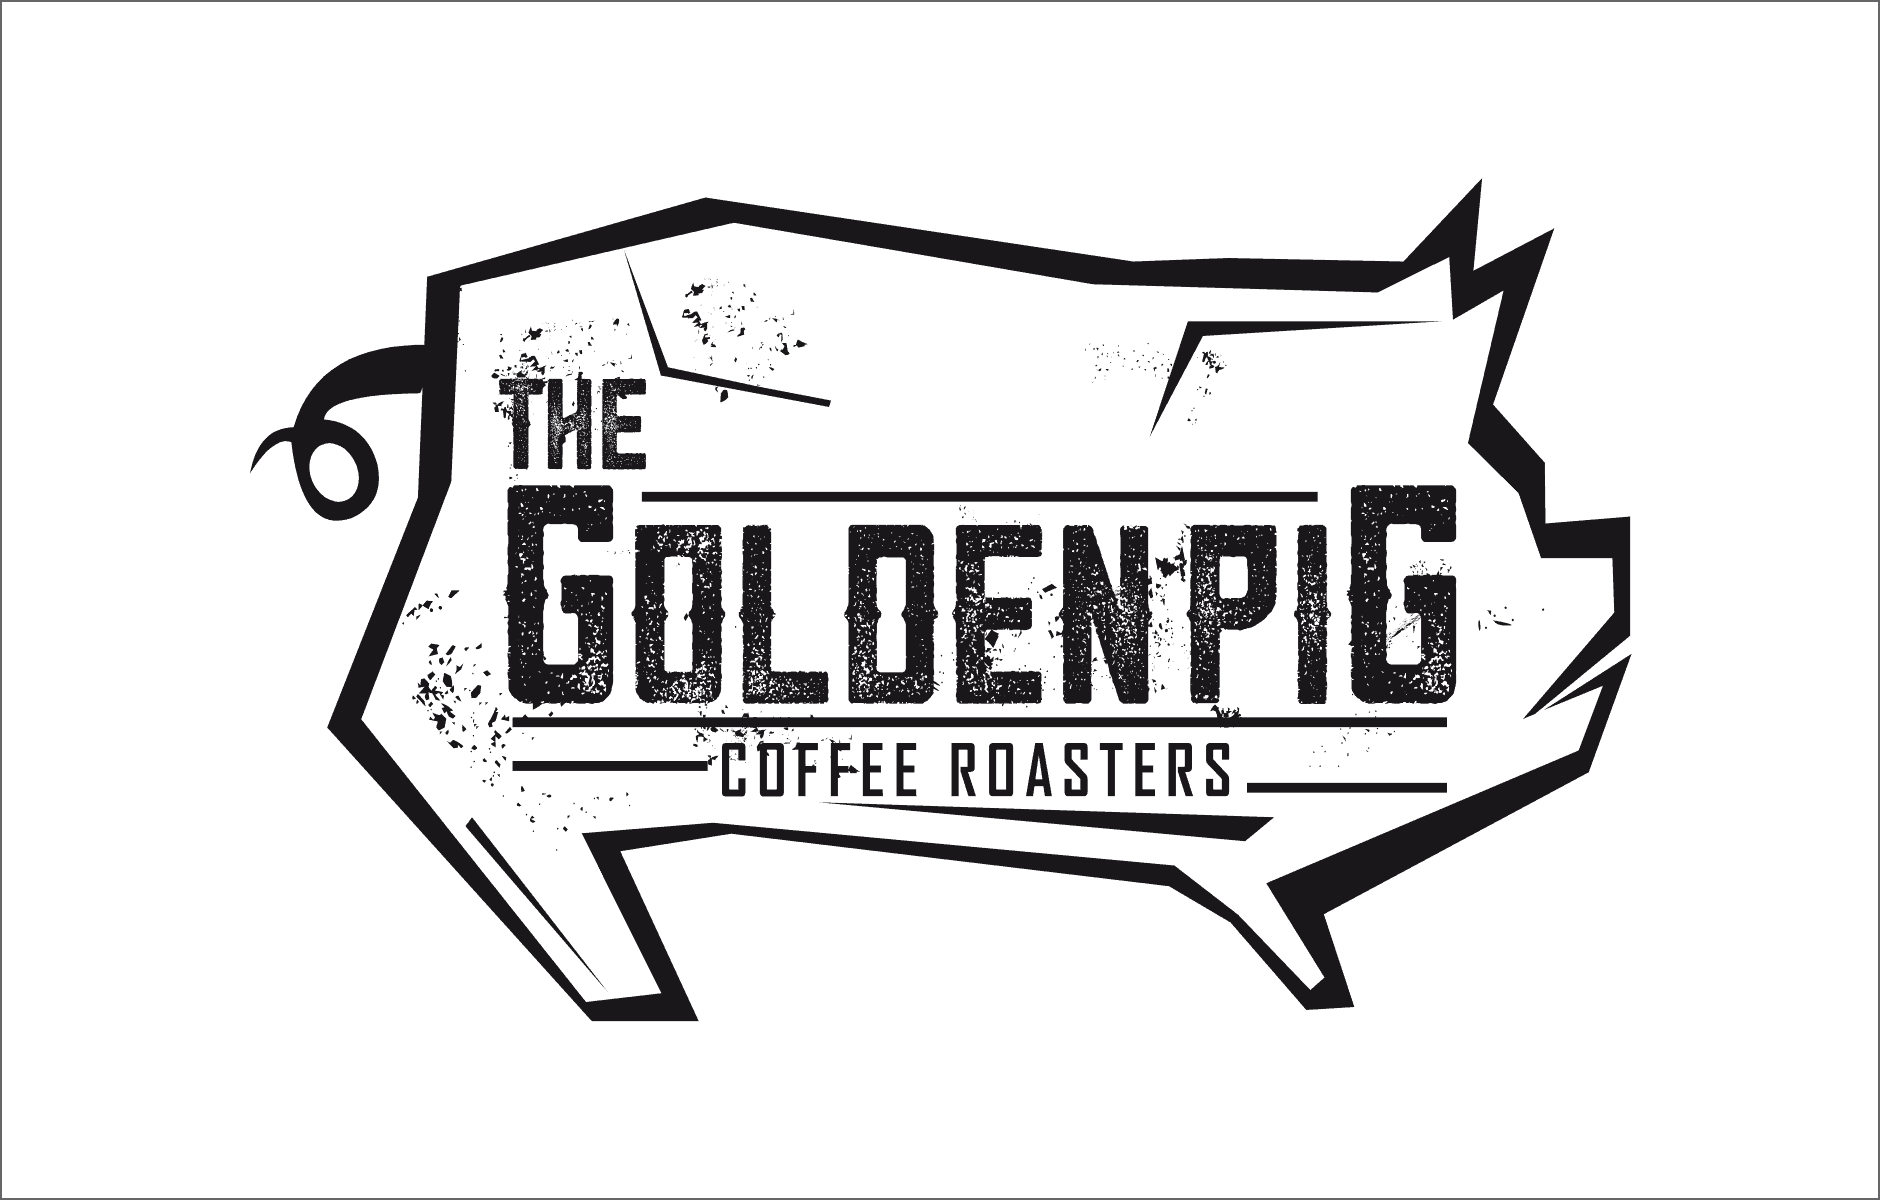 Tostador The Golden Pig